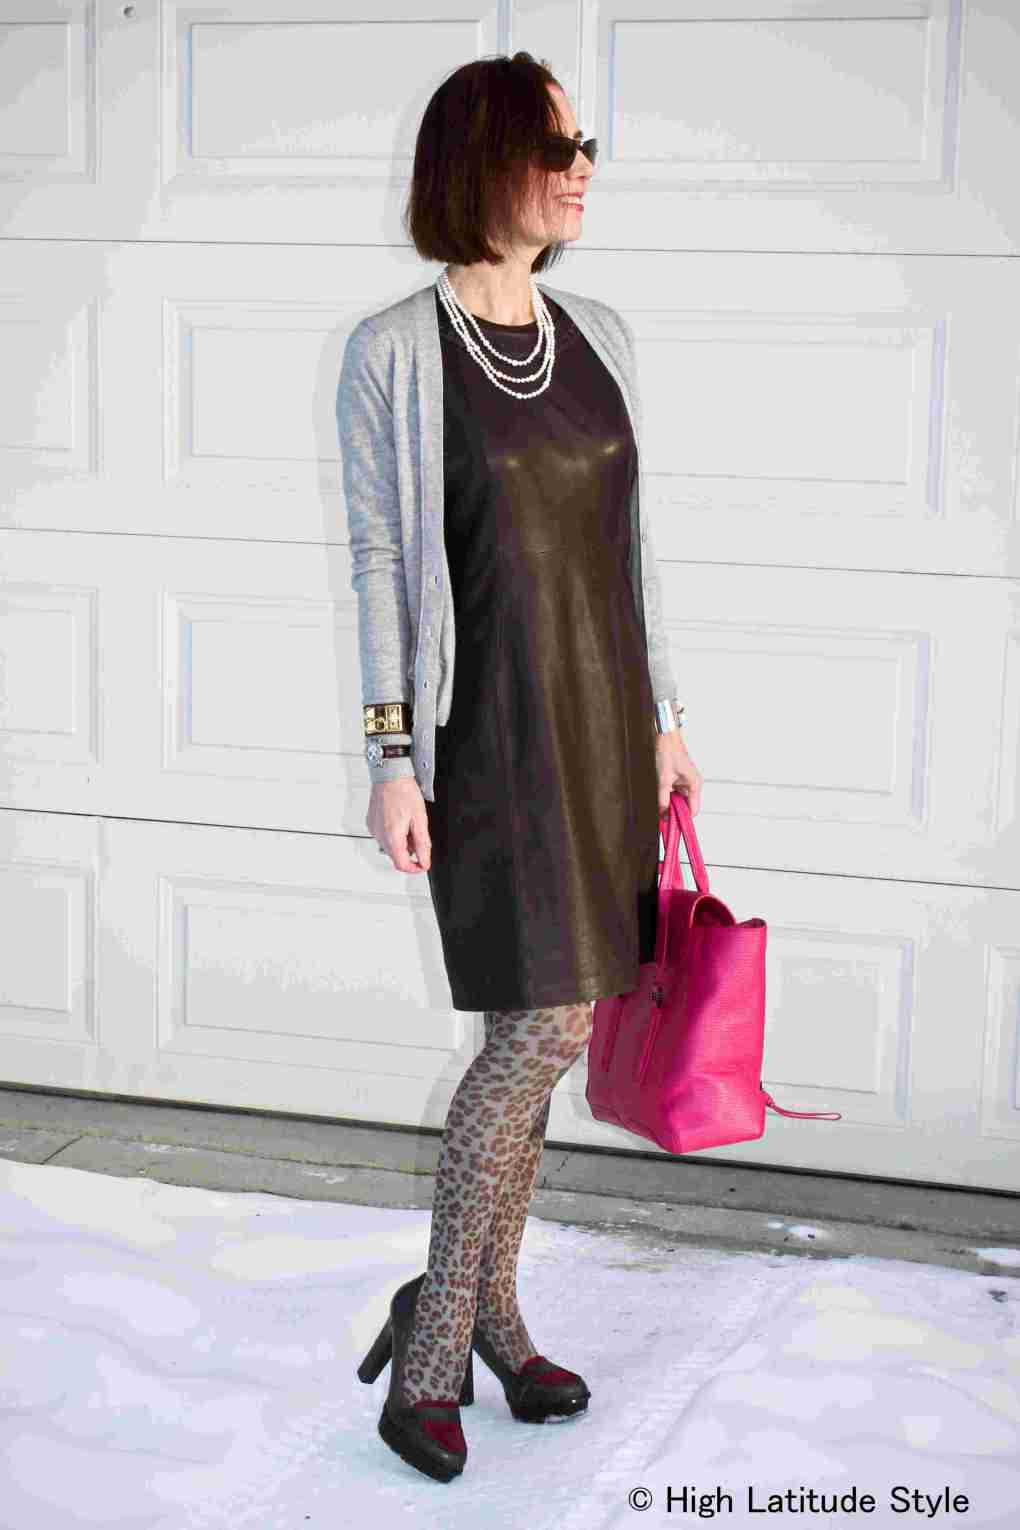 #styleover40 woman wearing a sheath dress with leopard print tights